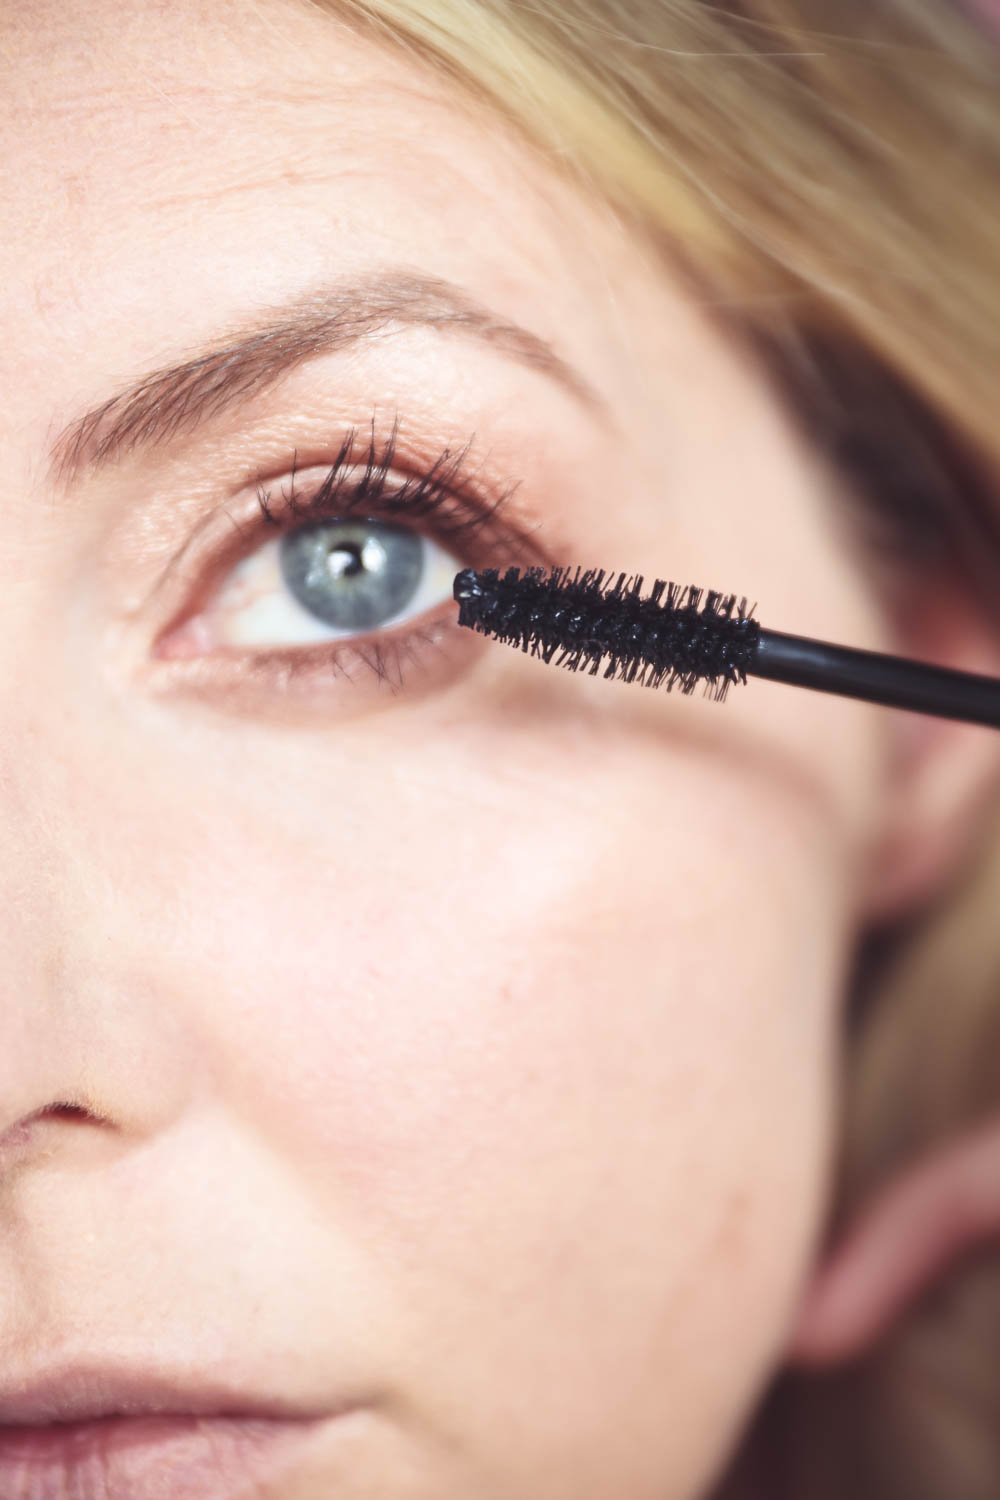 5-Minute makeup routine featuring charlotte tilbury big fat lashes mascara